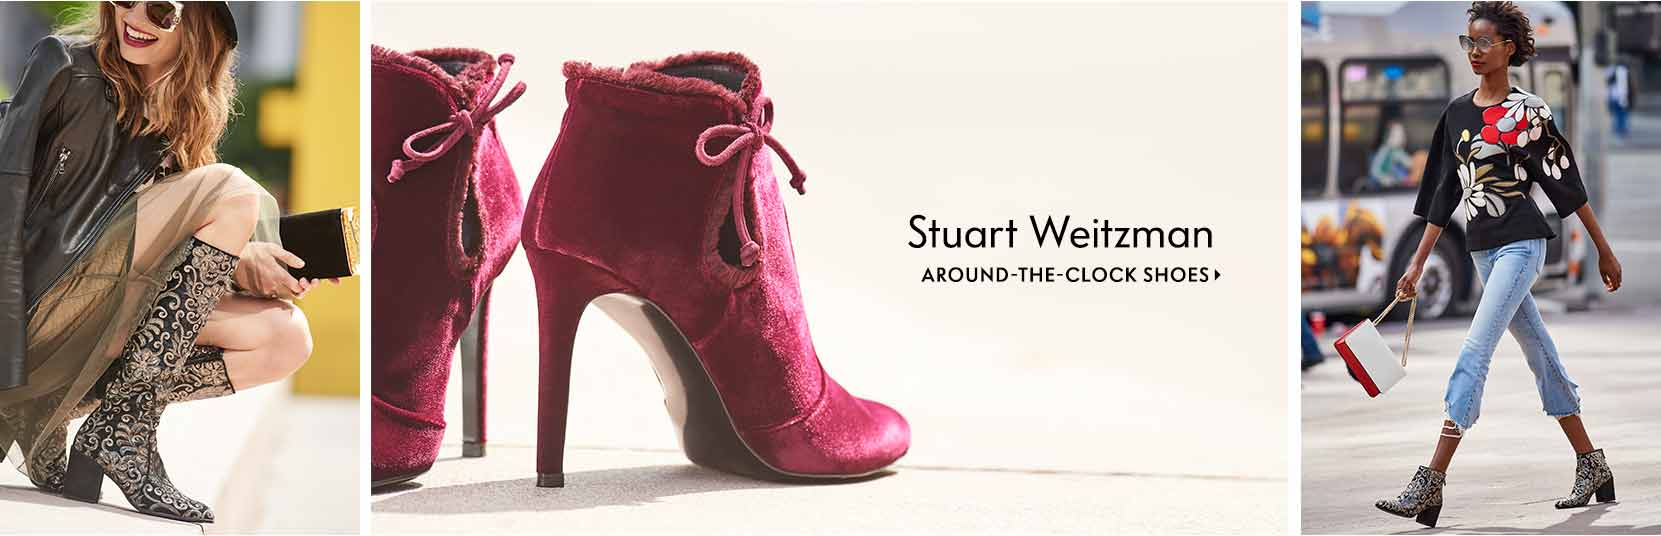 Stuart Weitzman Around-the-clock shoes